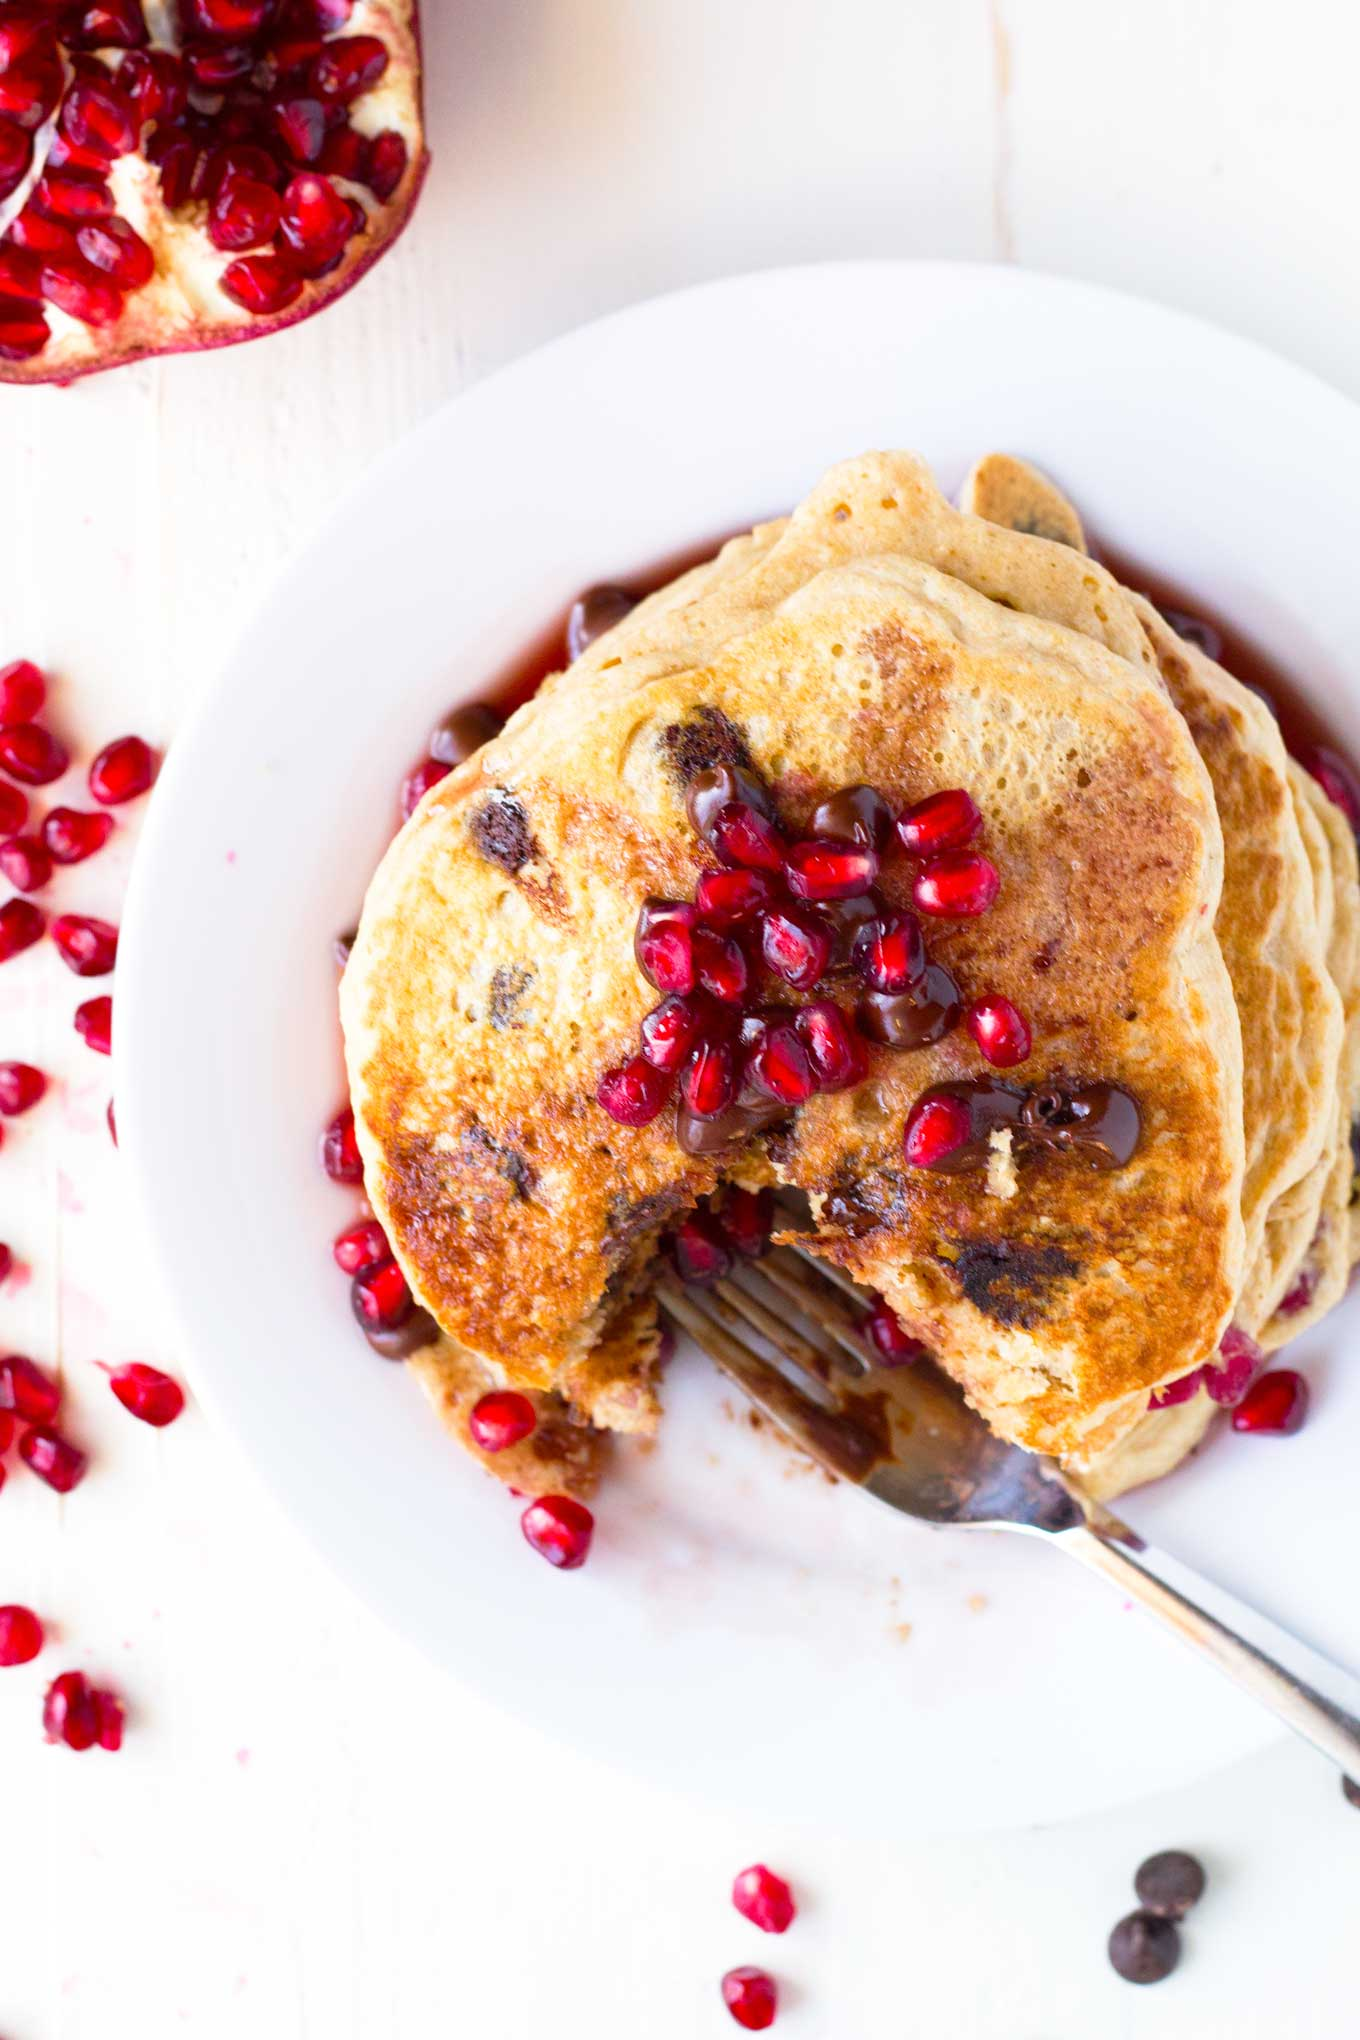 Pomegranate Chocolate Chip Pancakes with Pomegranate Syrup | Vegan, Oil-free, amazingly delicious! | http://eatwithinyourmeans.com